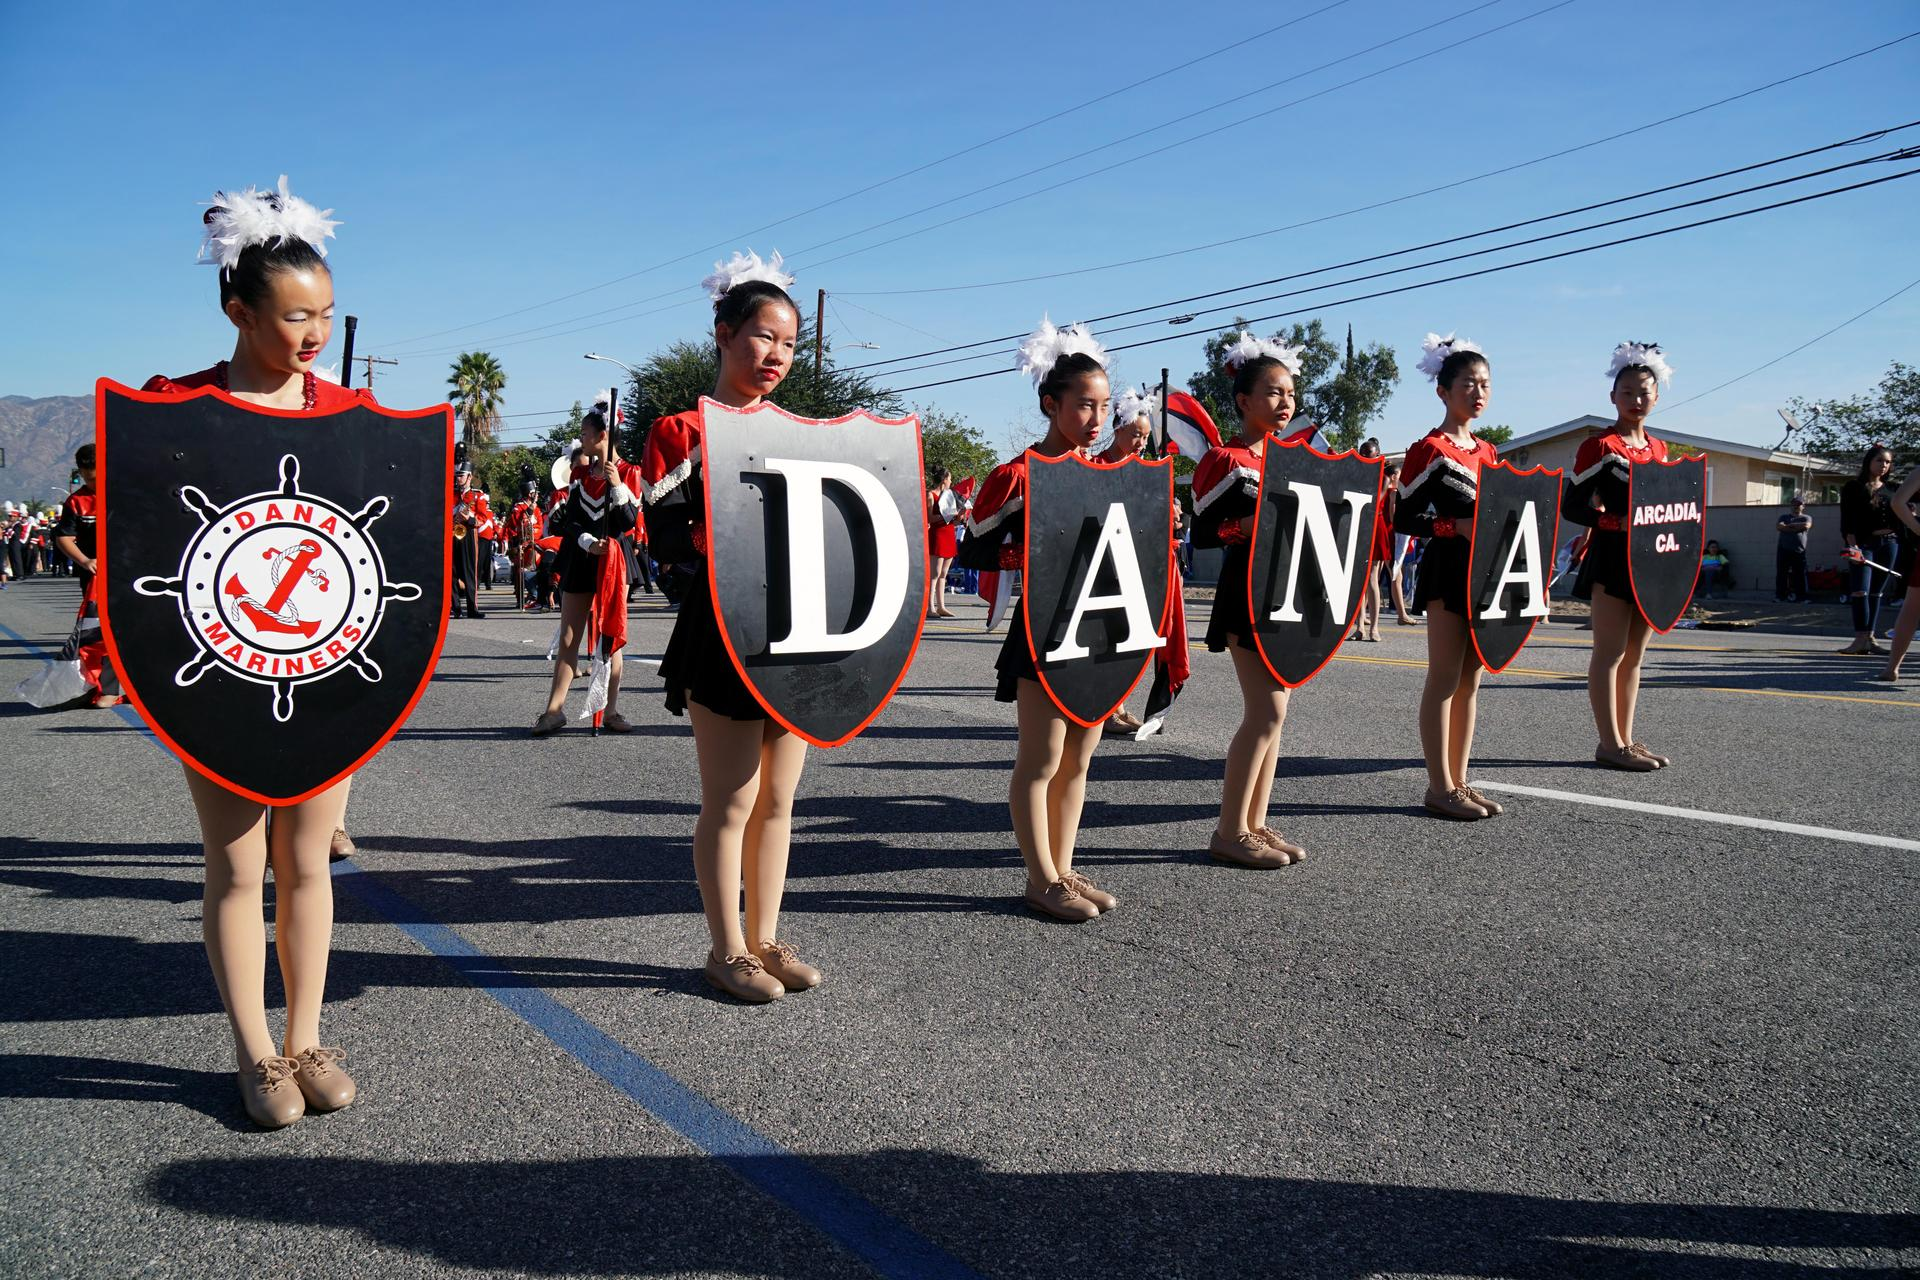 Dana Middle School Drill Team with Dana Sign